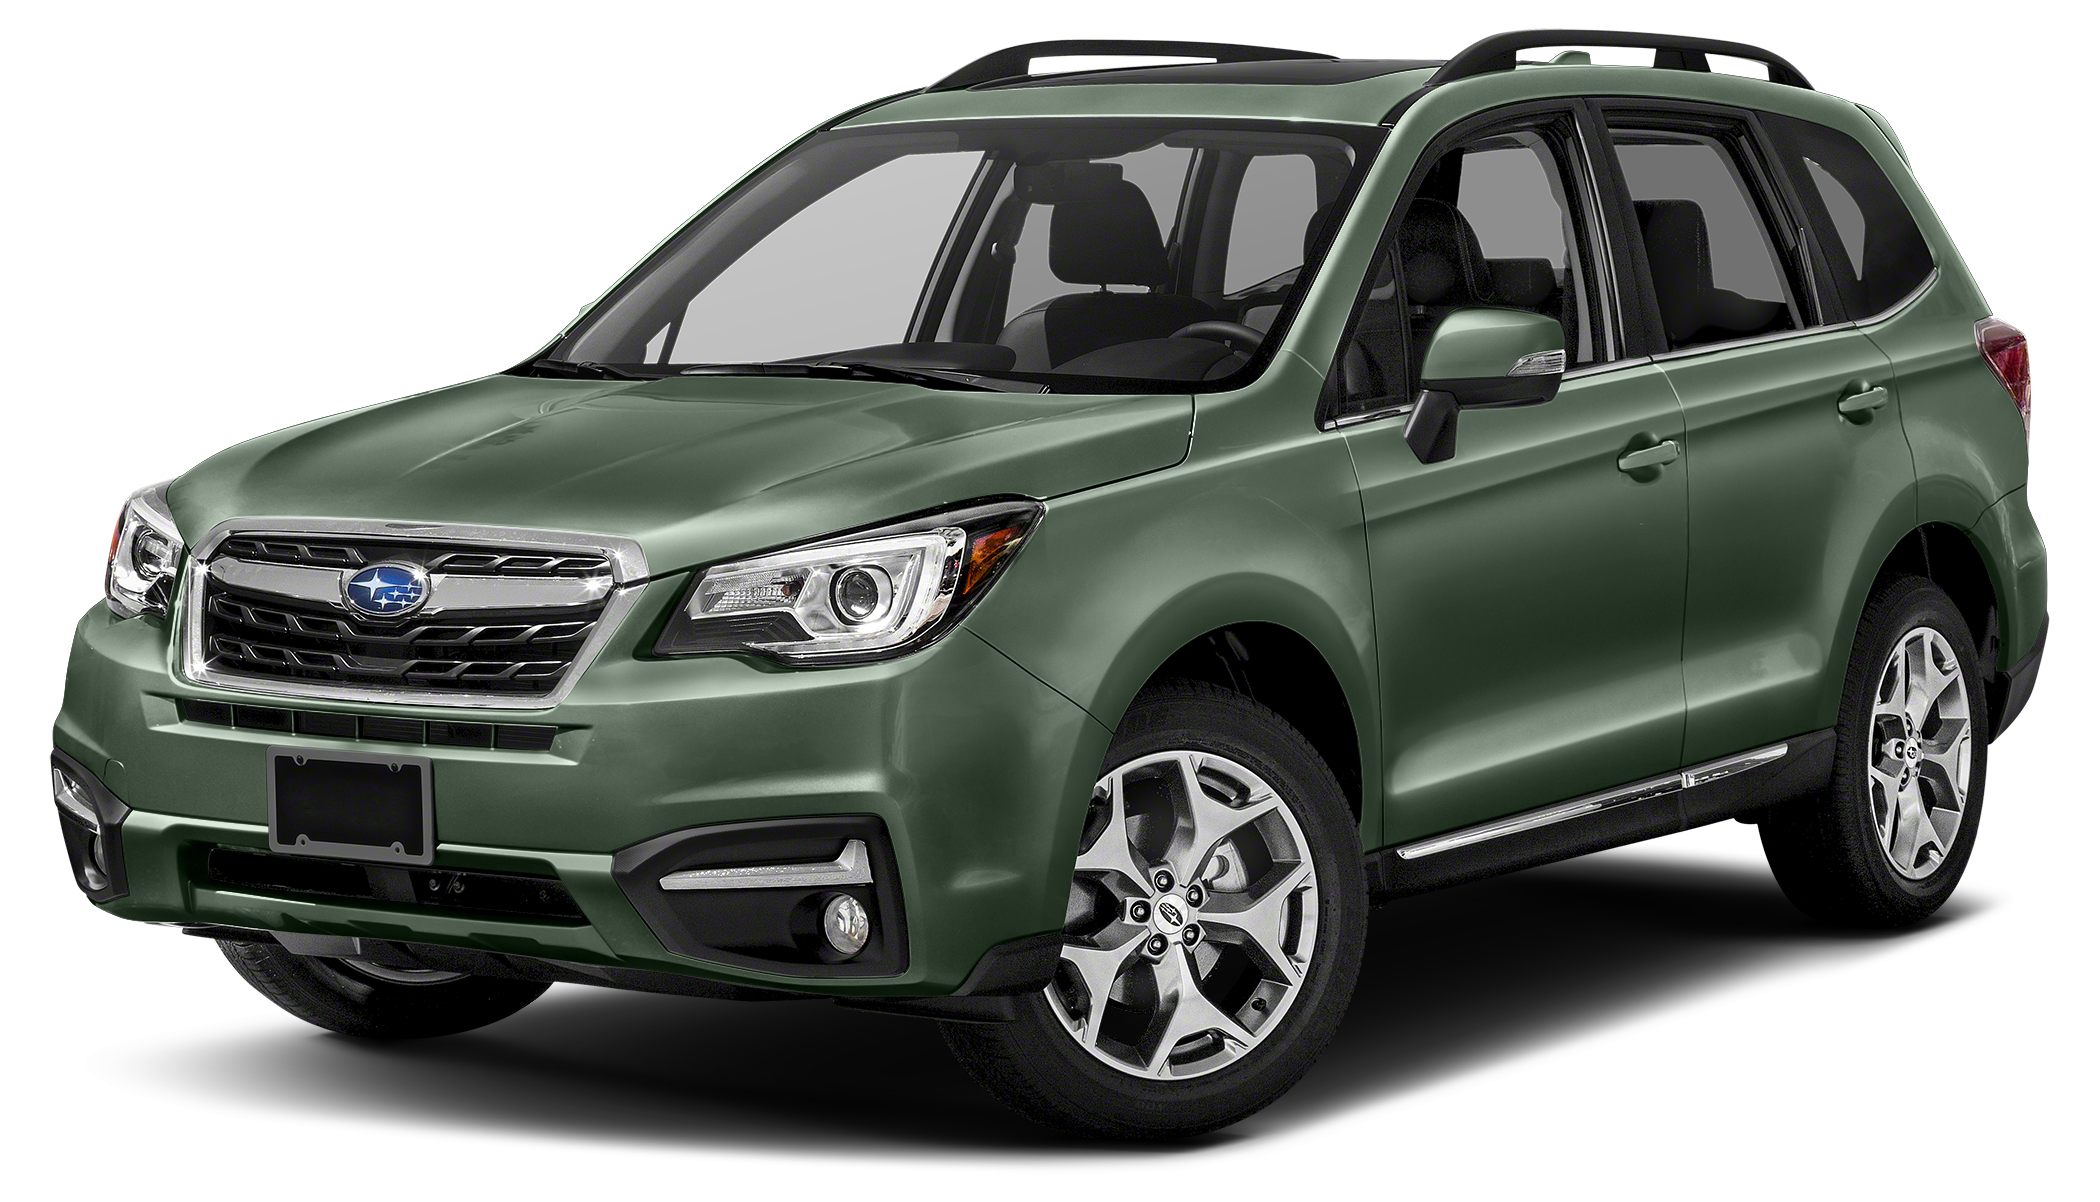 2017 Subaru Forester 25i Touring Thank you for visiting another one of Conley Subarus exclusive